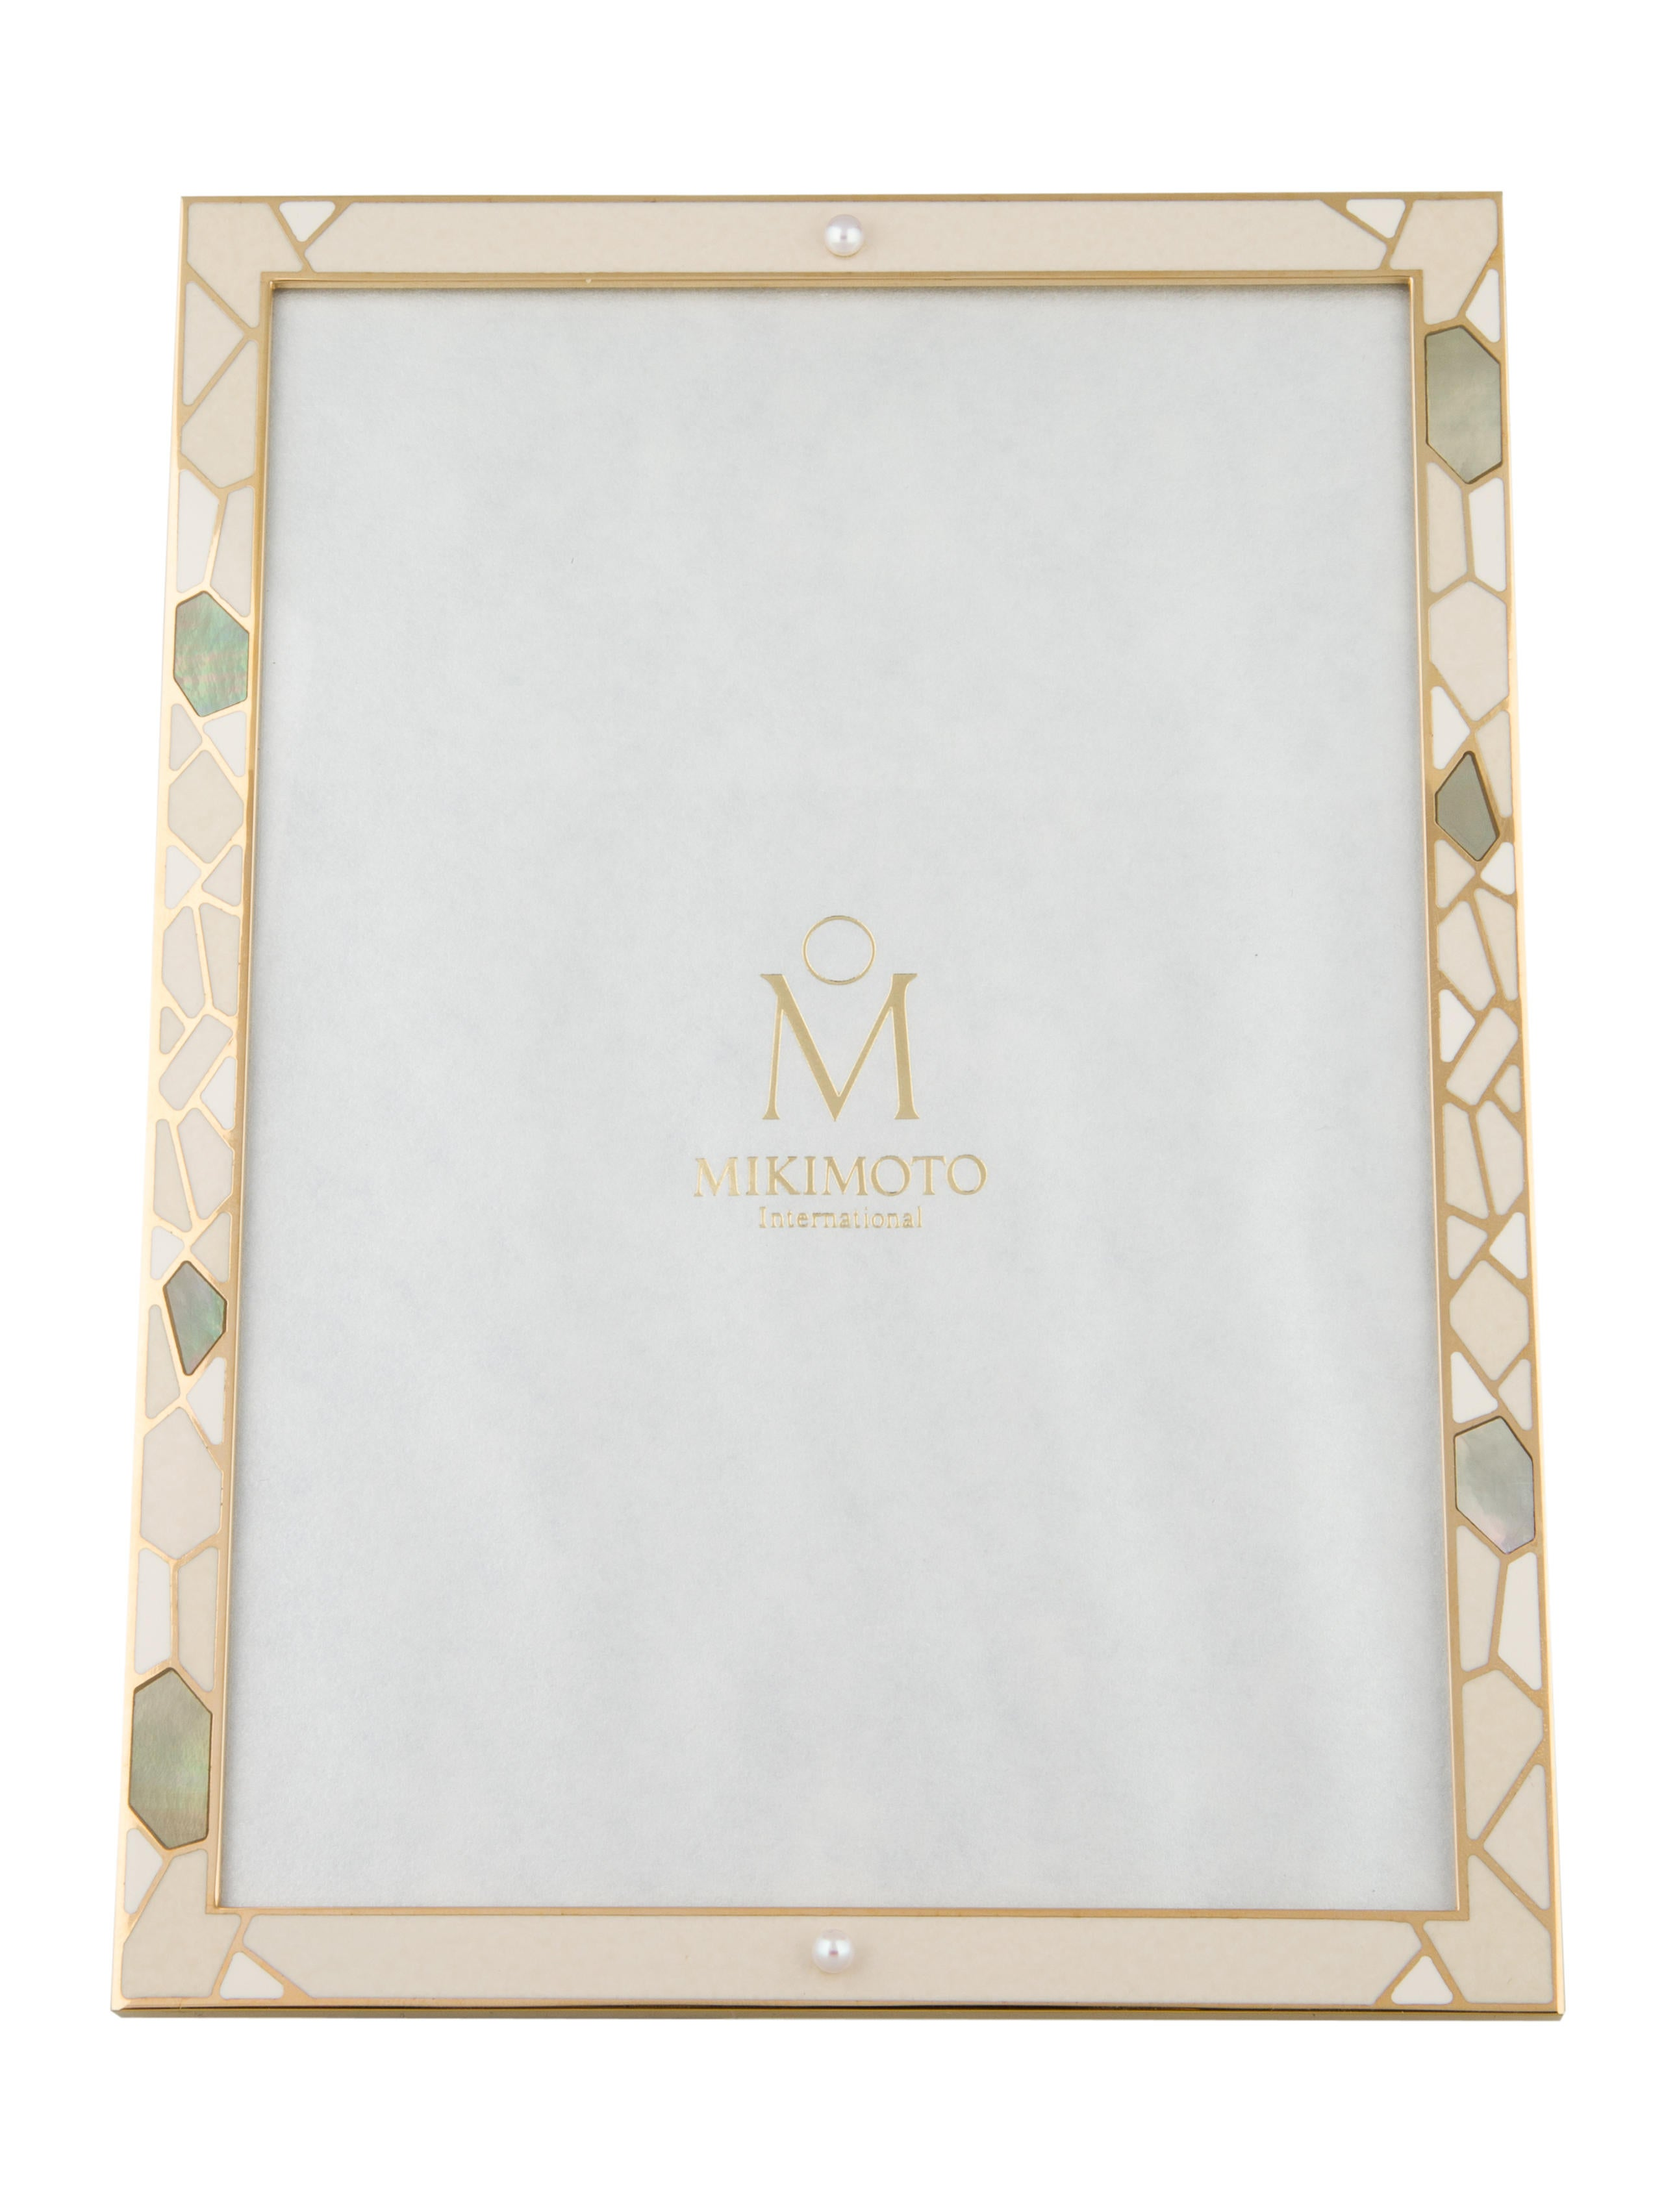 Mikimoto Pearl-Embellished Picture Frame - Decor And Accessories ...